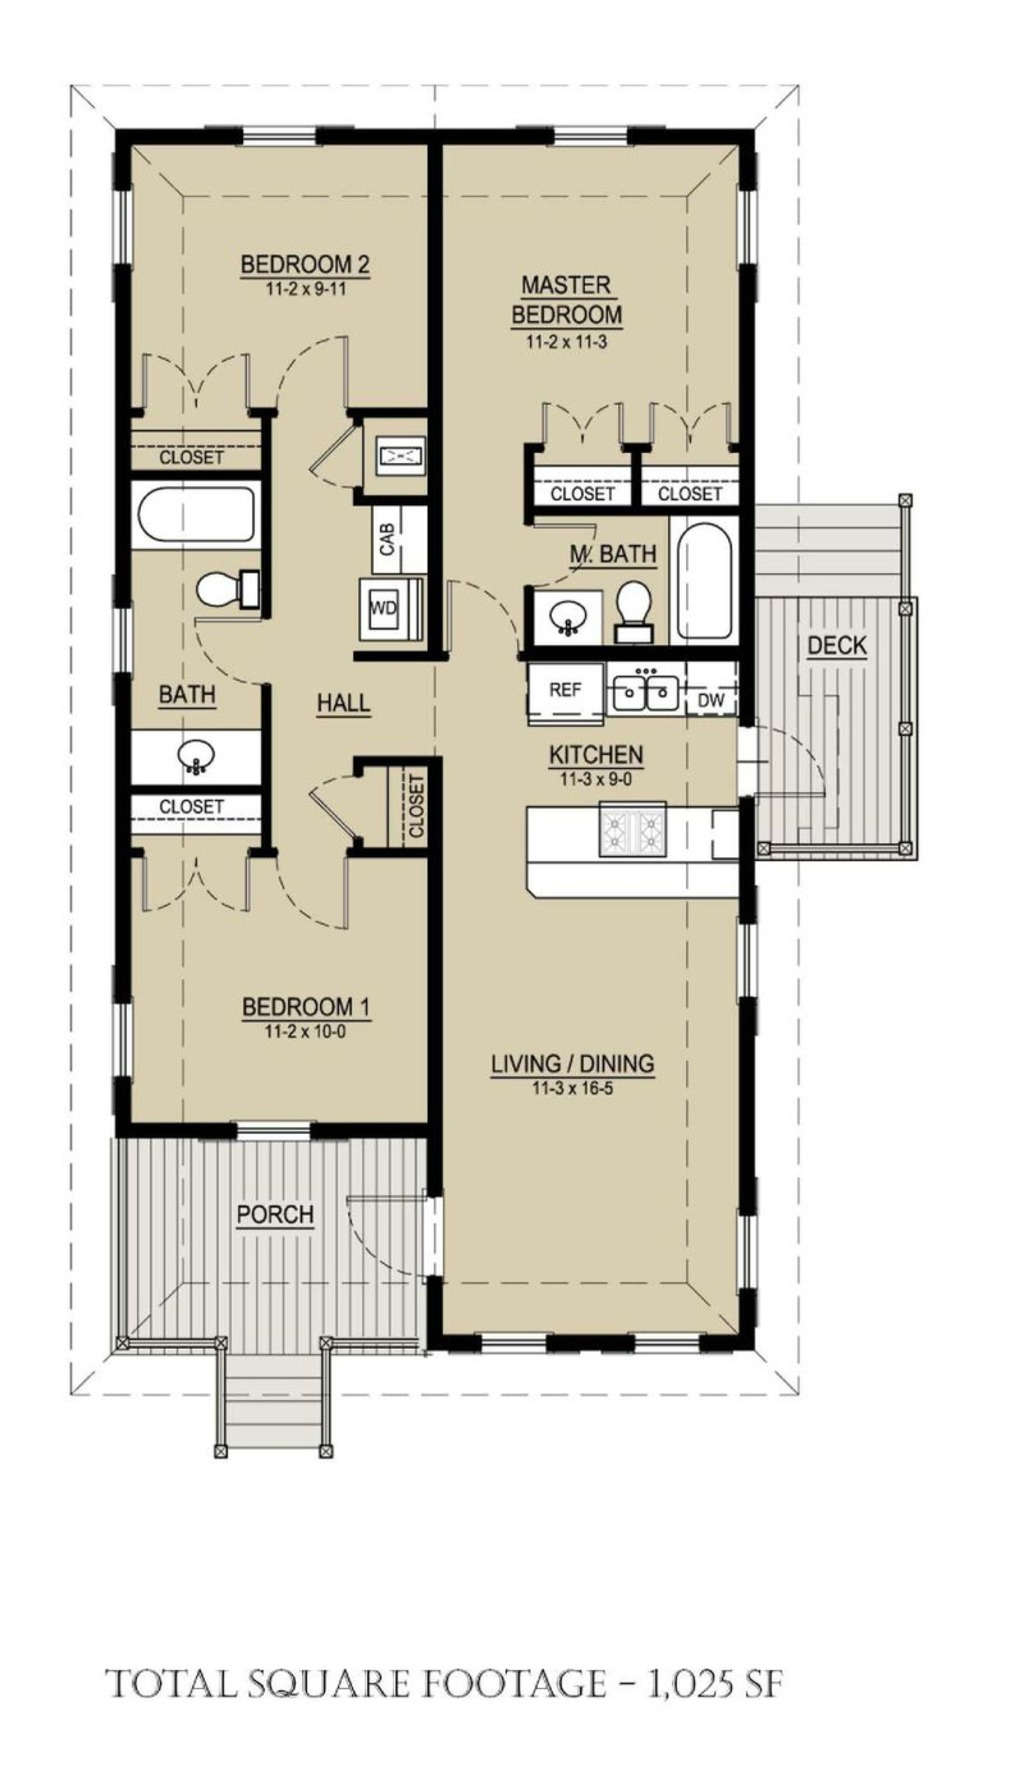 1000 Square Feet House Cost Beautiful Cottage Style House Plan 3 Beds 2 Baths 1025 Sq Ft Plan 536 3